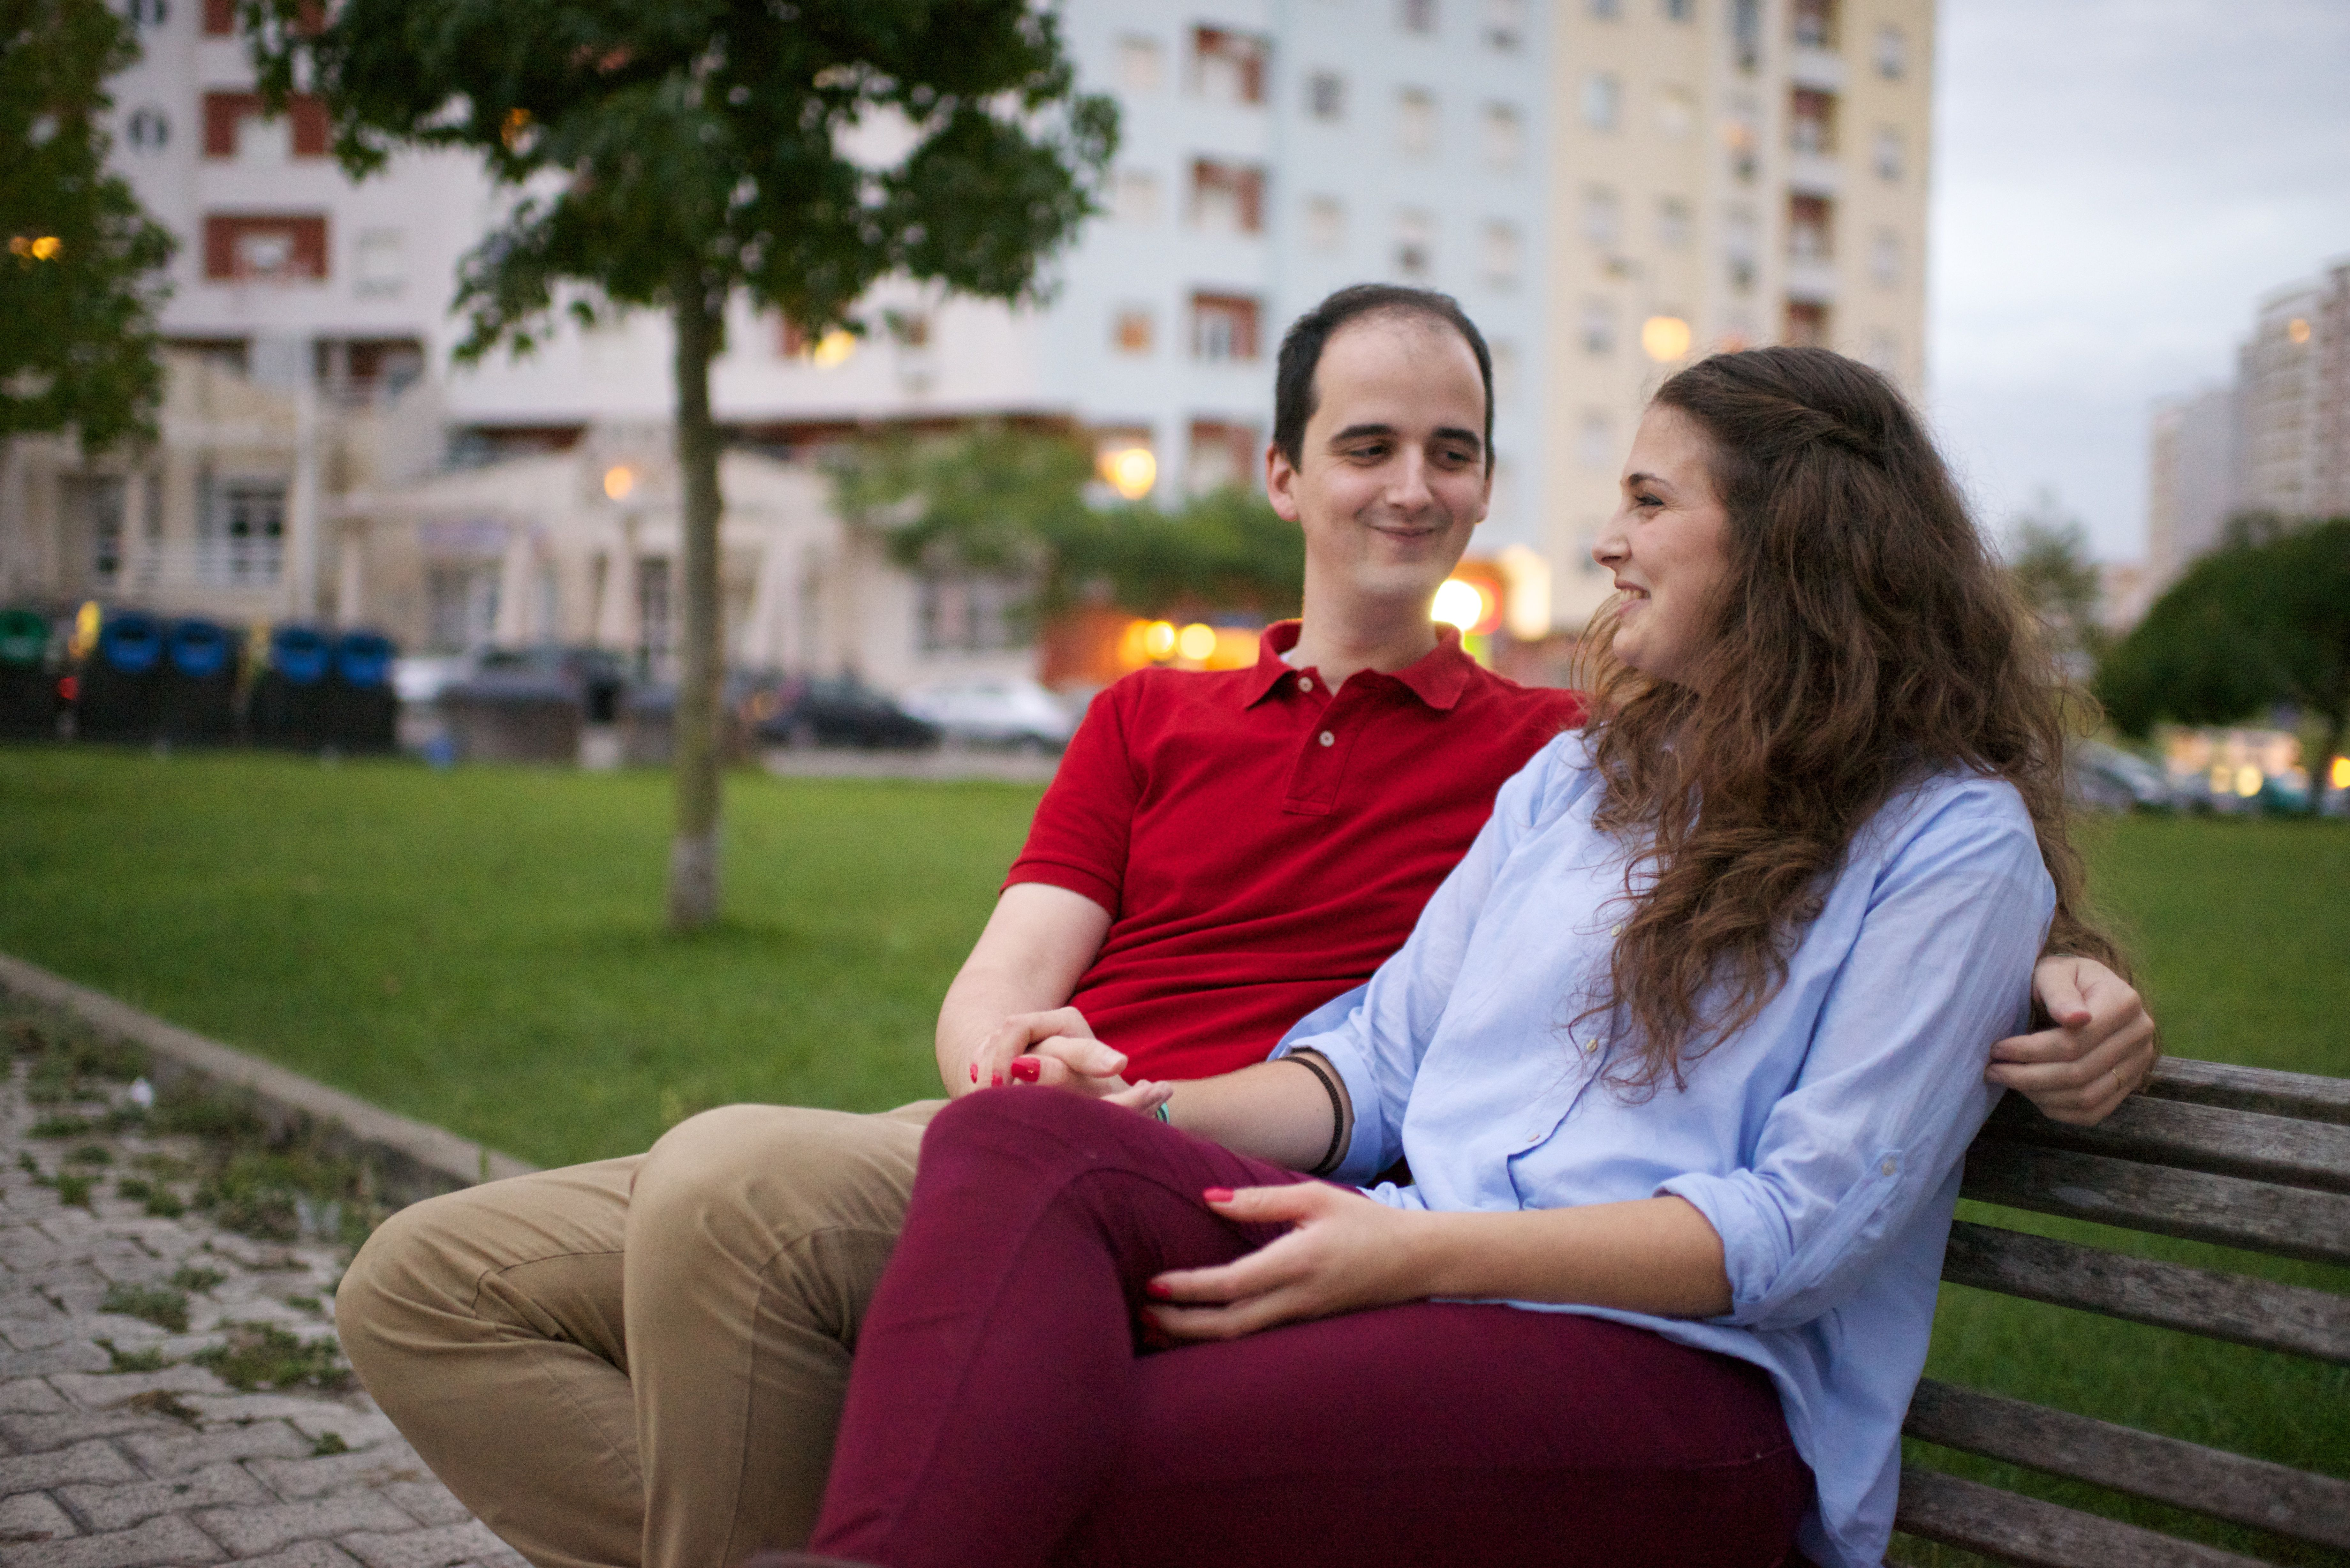 A young couple from Portugal sitting on a wooden bench outside.